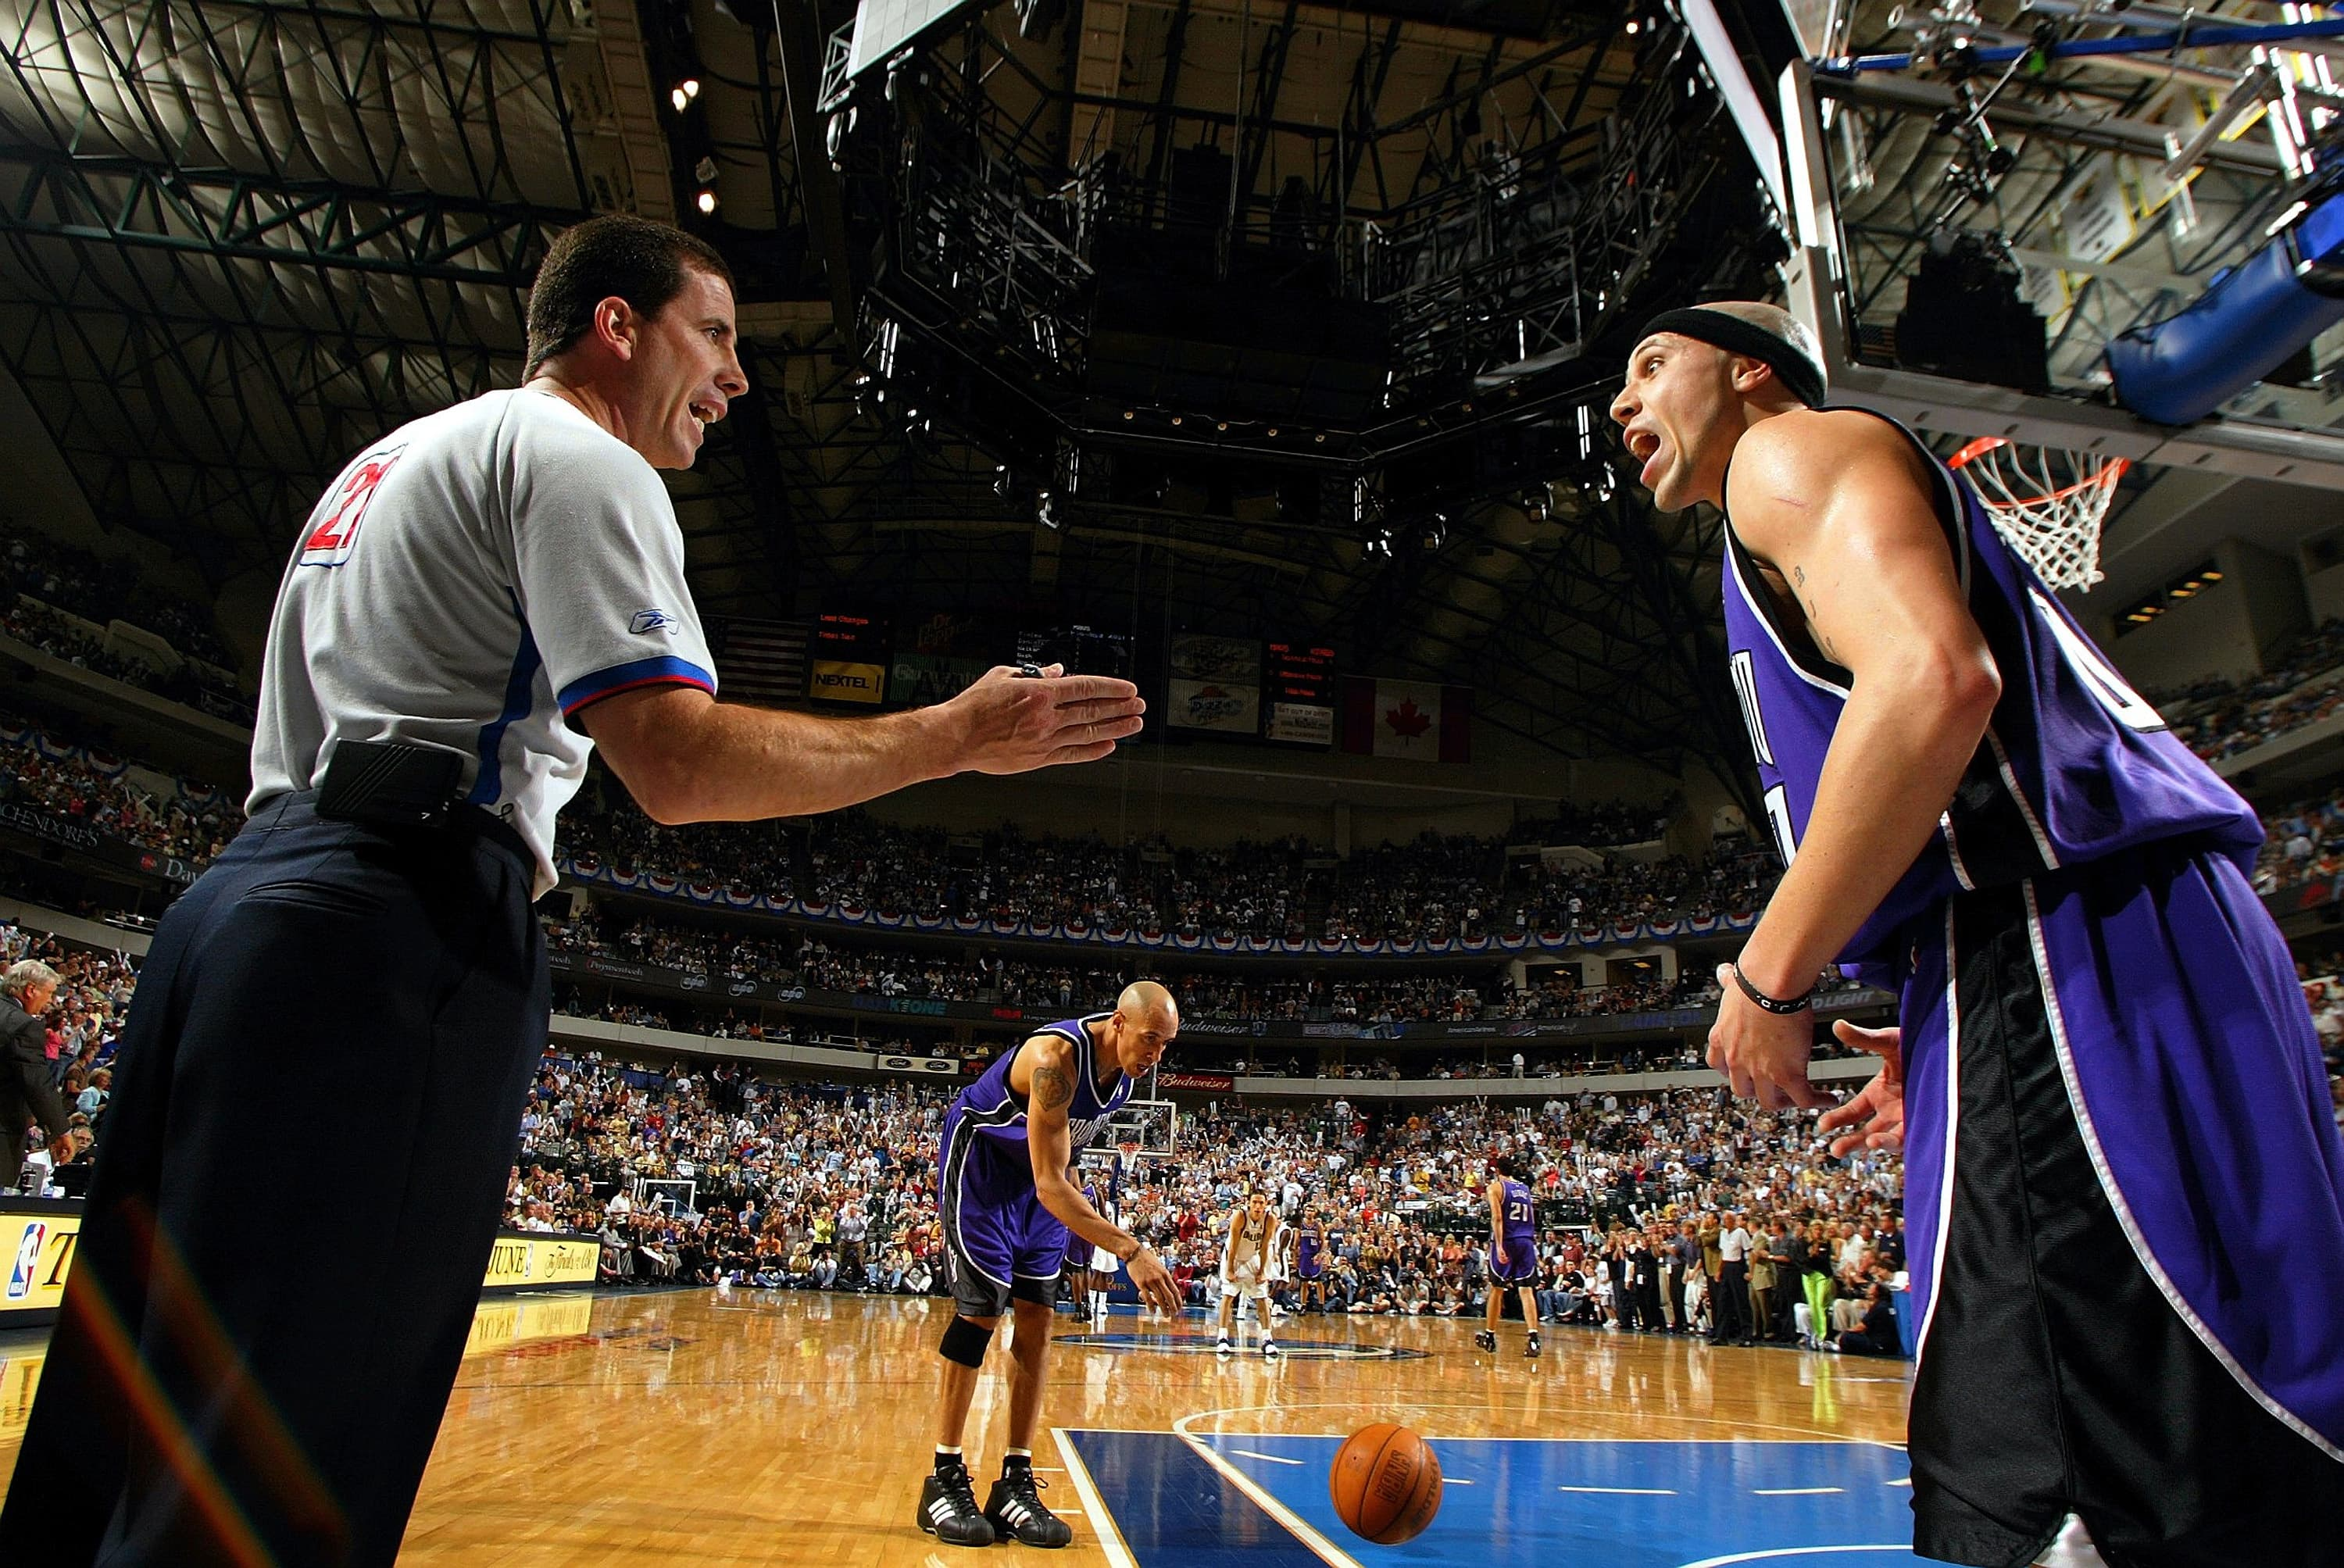 Nba referee fired for betting websites best indicator for 60 seconds binary options